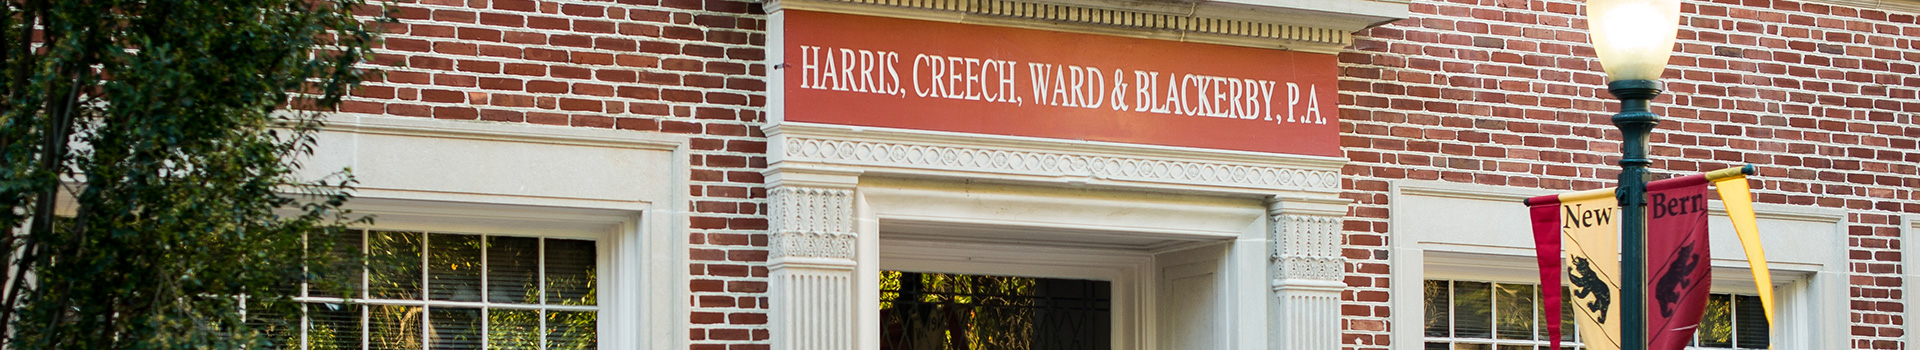 The Harris, Creech, Ward & Blackerby Law Firm